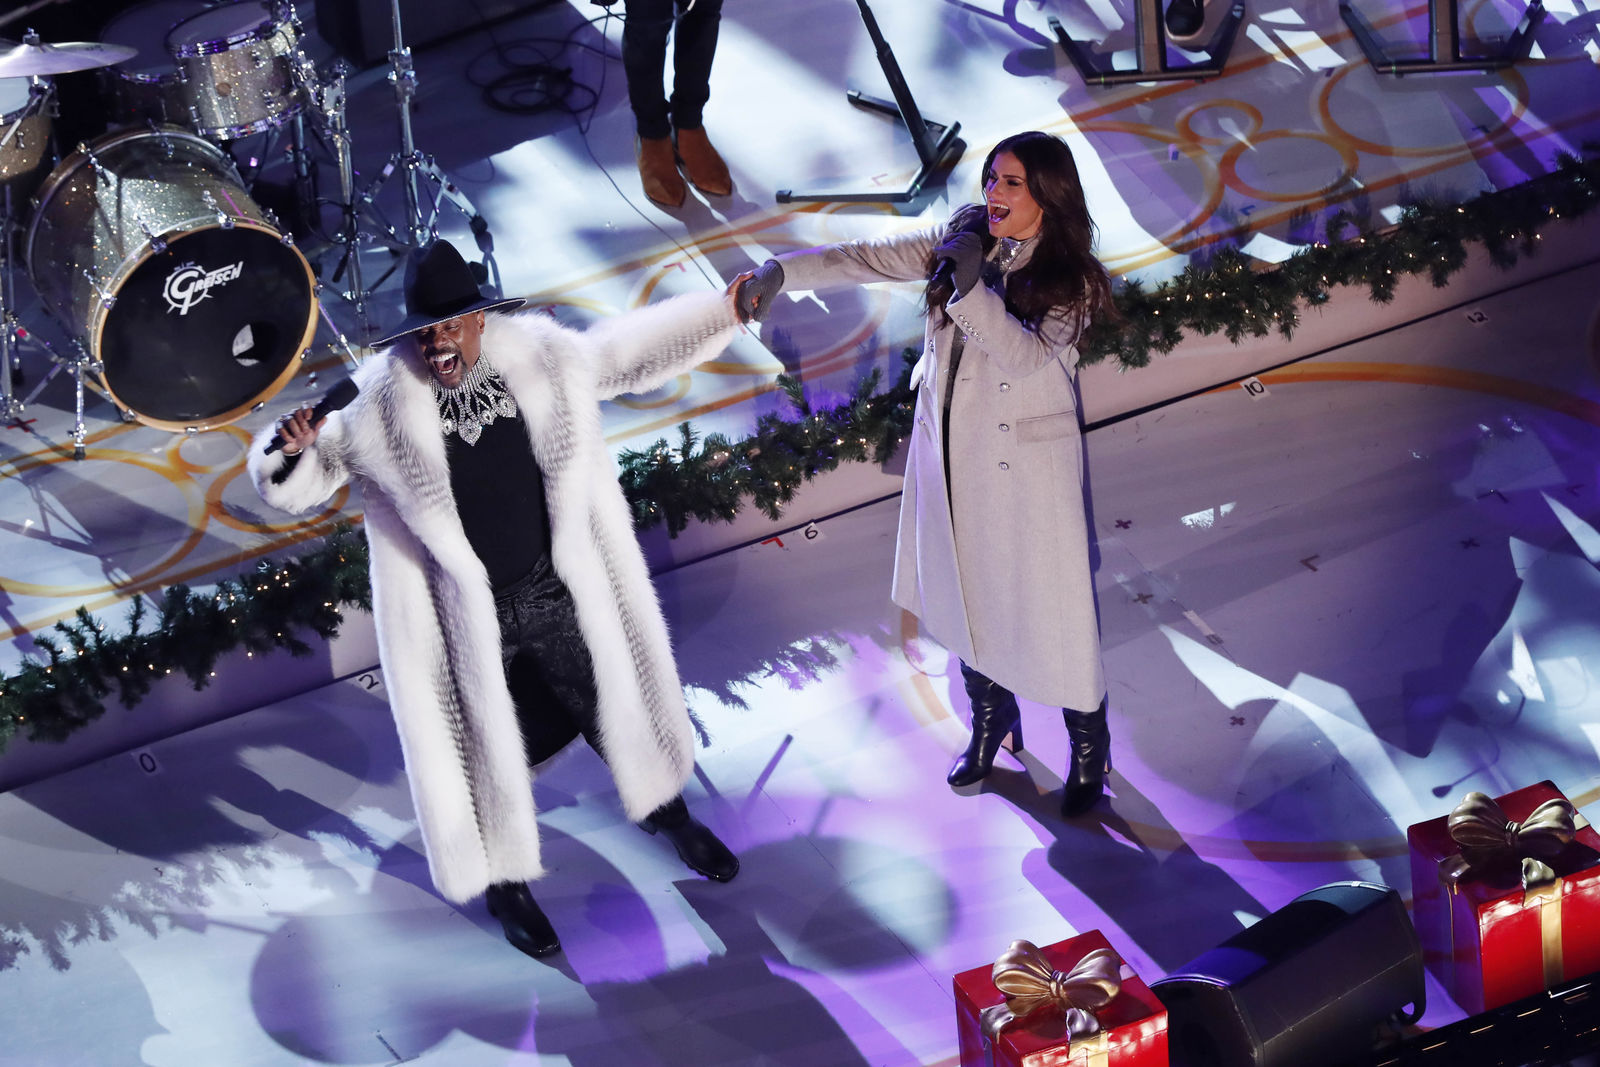 Billy Porter, left, and Idina Menzel perform during the 87th annual Rockefeller Center Christmas Tree lighting ceremony, Wednesday, Dec. 4, 2019, in New York. (AP Photo/Kathy Willens)